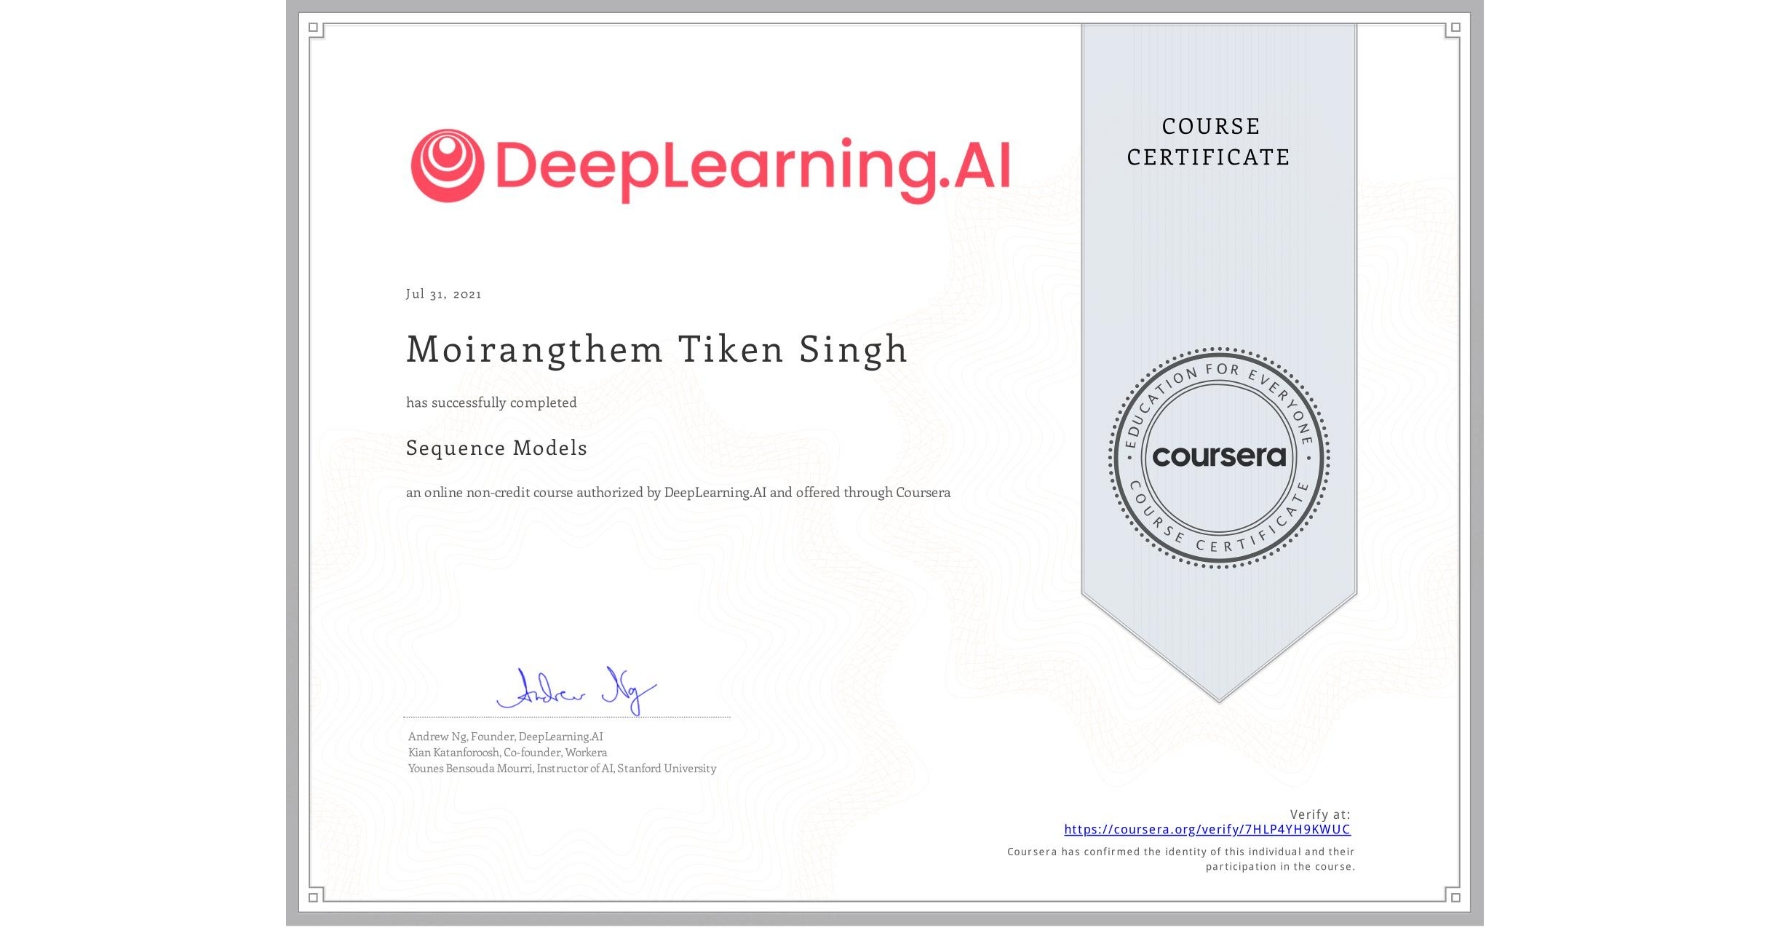 View certificate for Moirangthem Tiken Singh, Sequence Models, an online non-credit course authorized by DeepLearning.AI and offered through Coursera